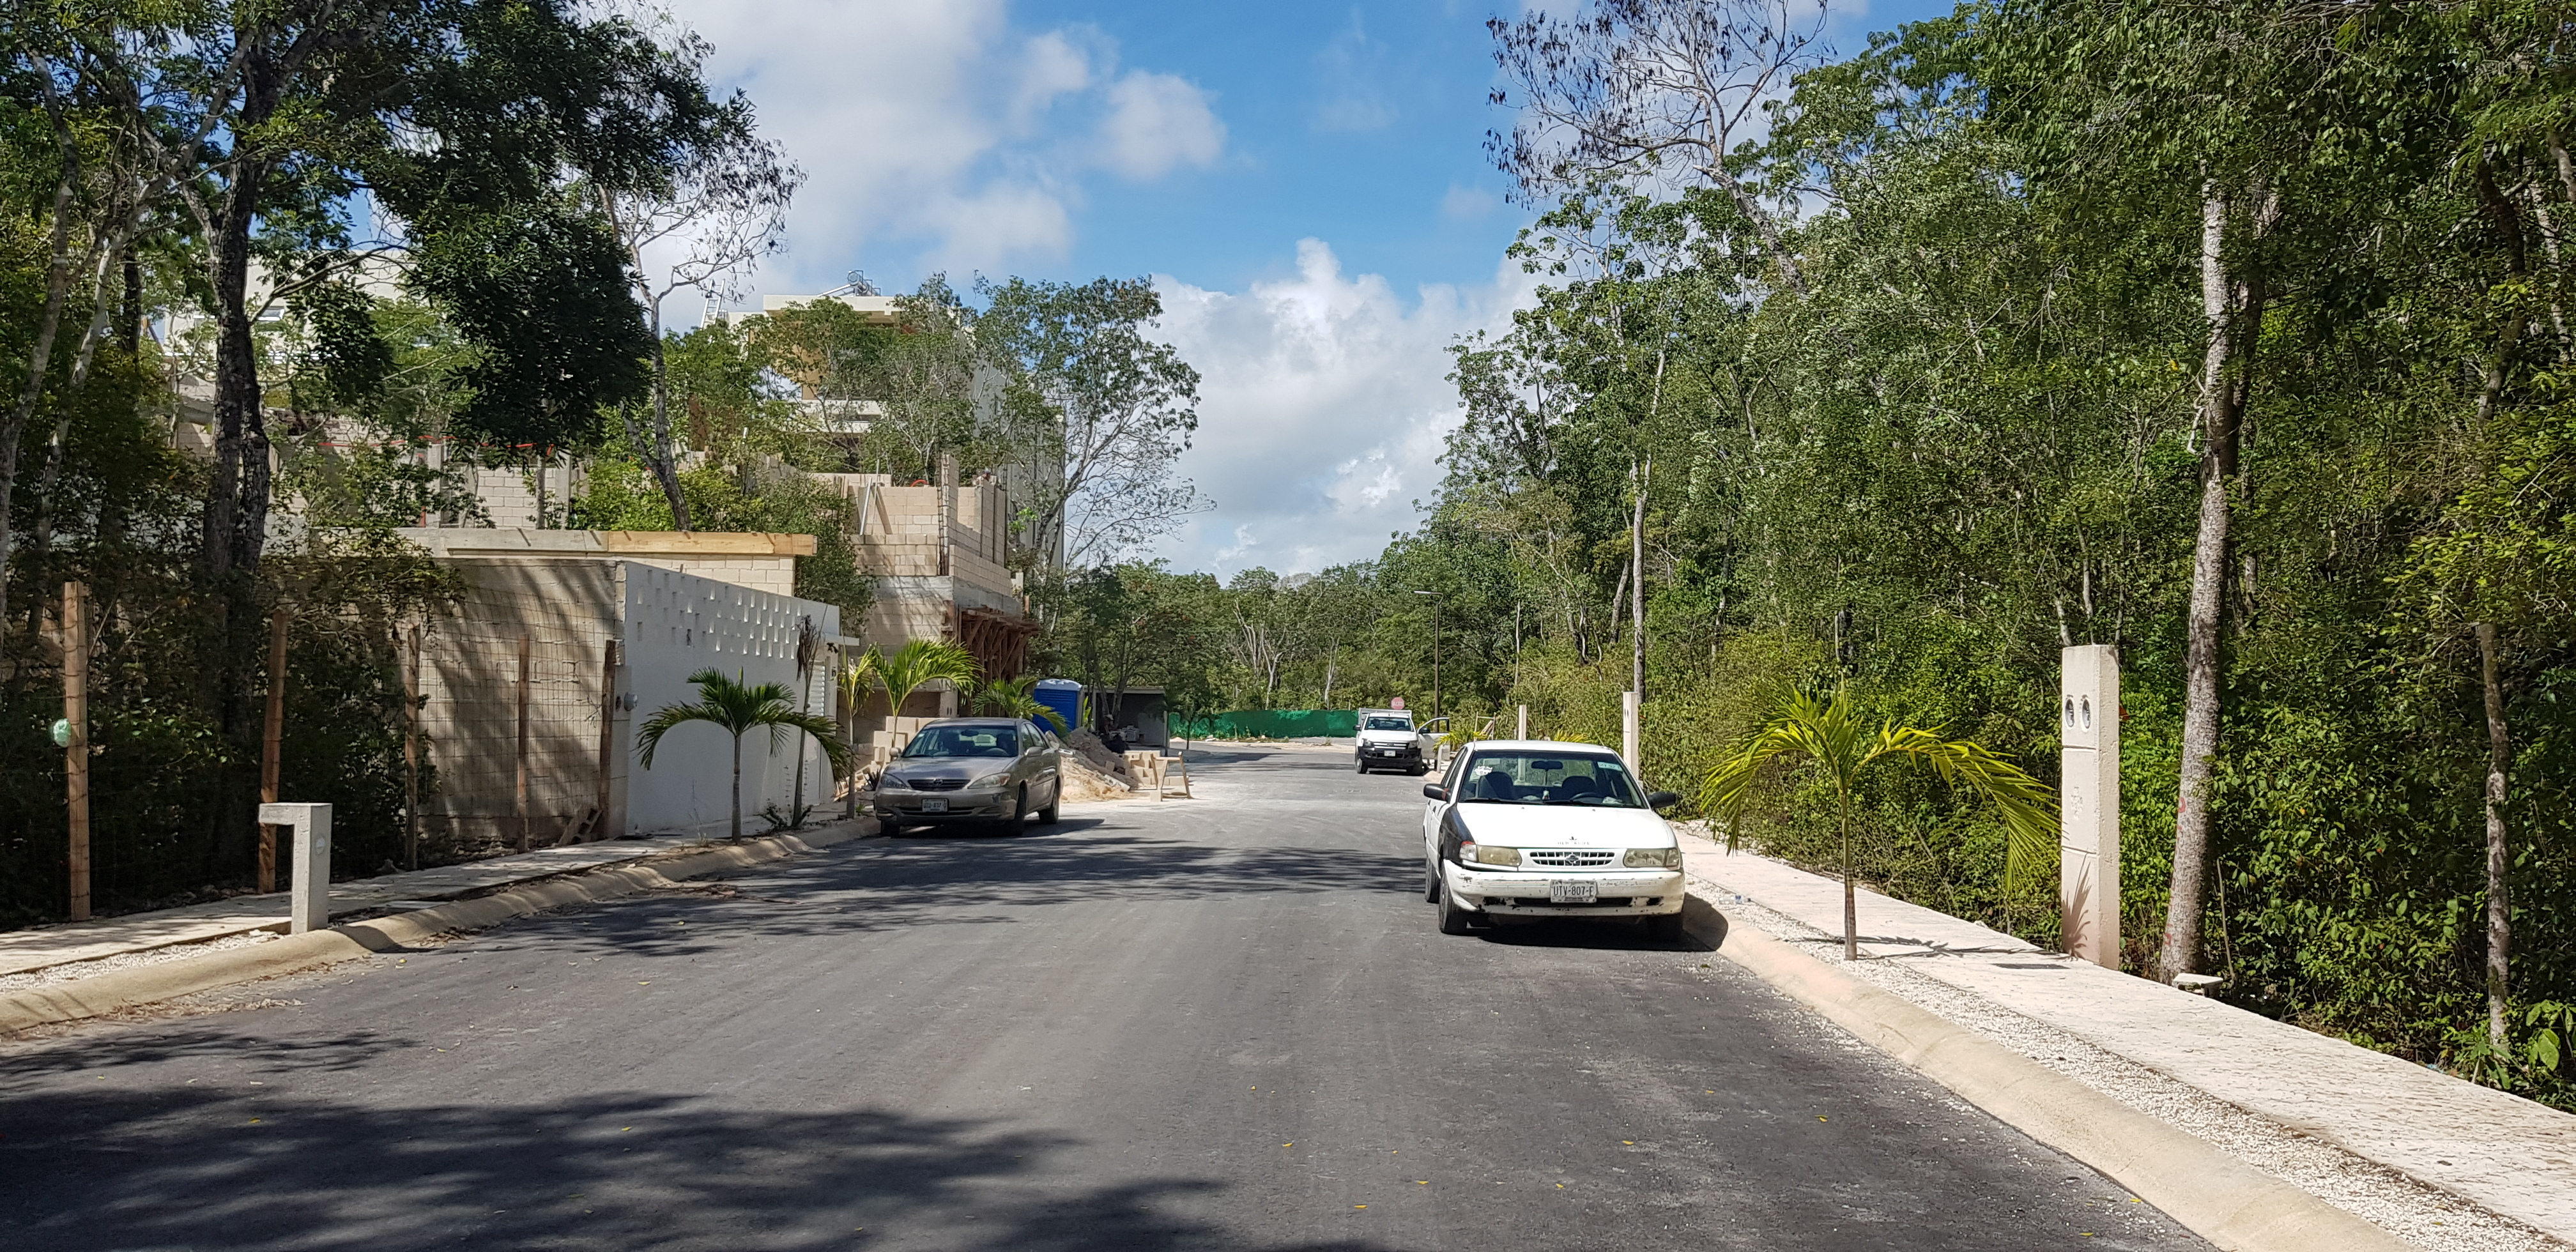 Lot of 2228.13 sqf  in a gated community of Tulum